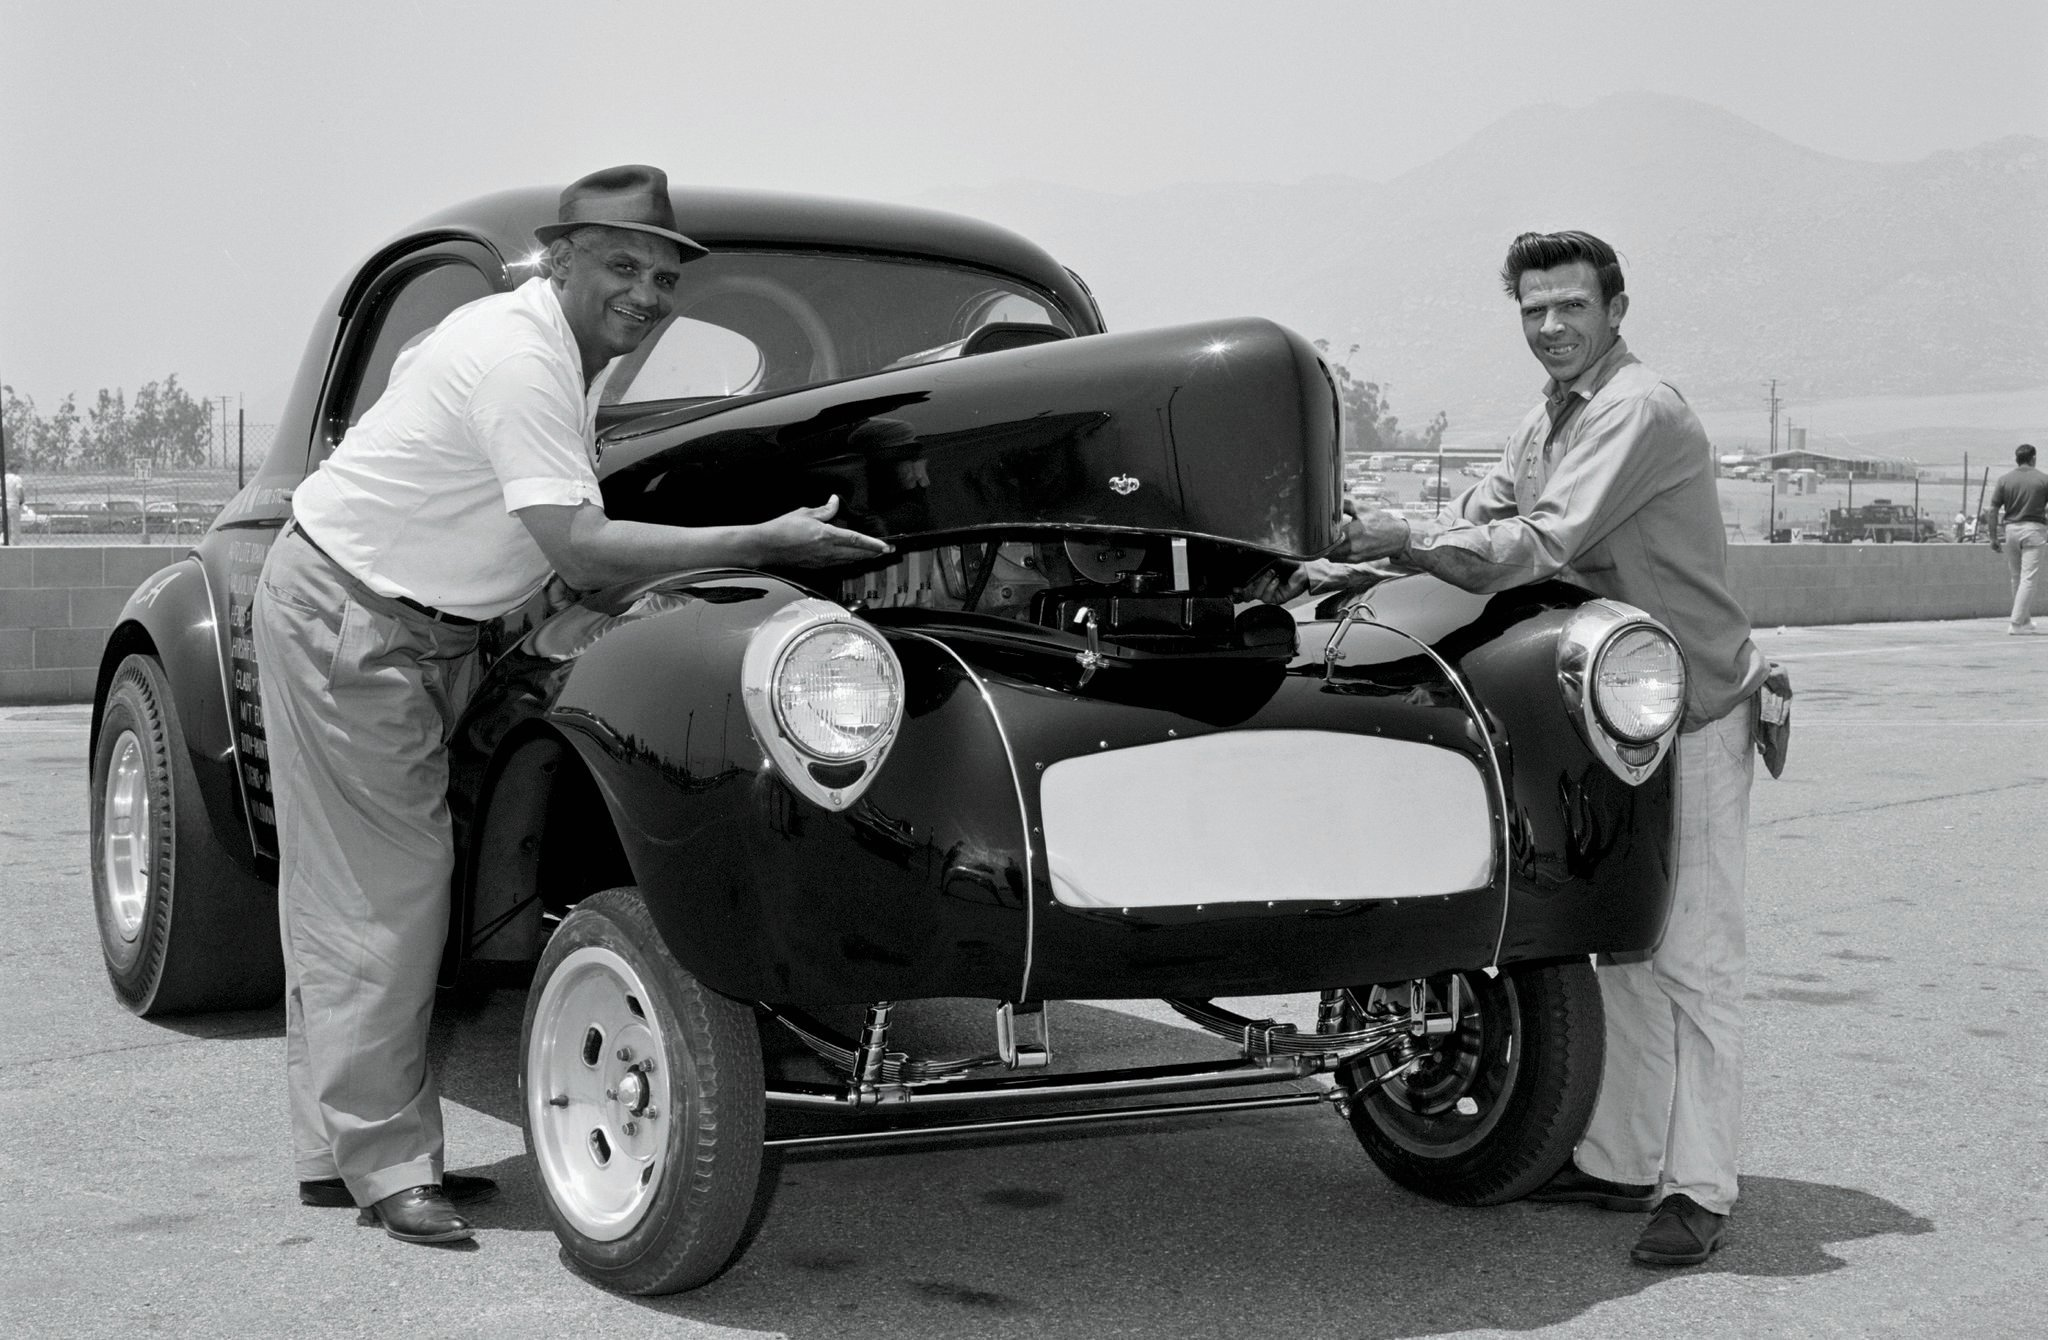 Tim Woods (left), Doug Cook (right), and Fred Stone campaigned three Super Gassers in '64: this Swindler A, the blue Swindler B, and the Dark Horse '33 Willys driven by Chuck Finders. In the background is Riverside International Raceway, where Car Craft shot a feature during sister-magazine HRM's meet.